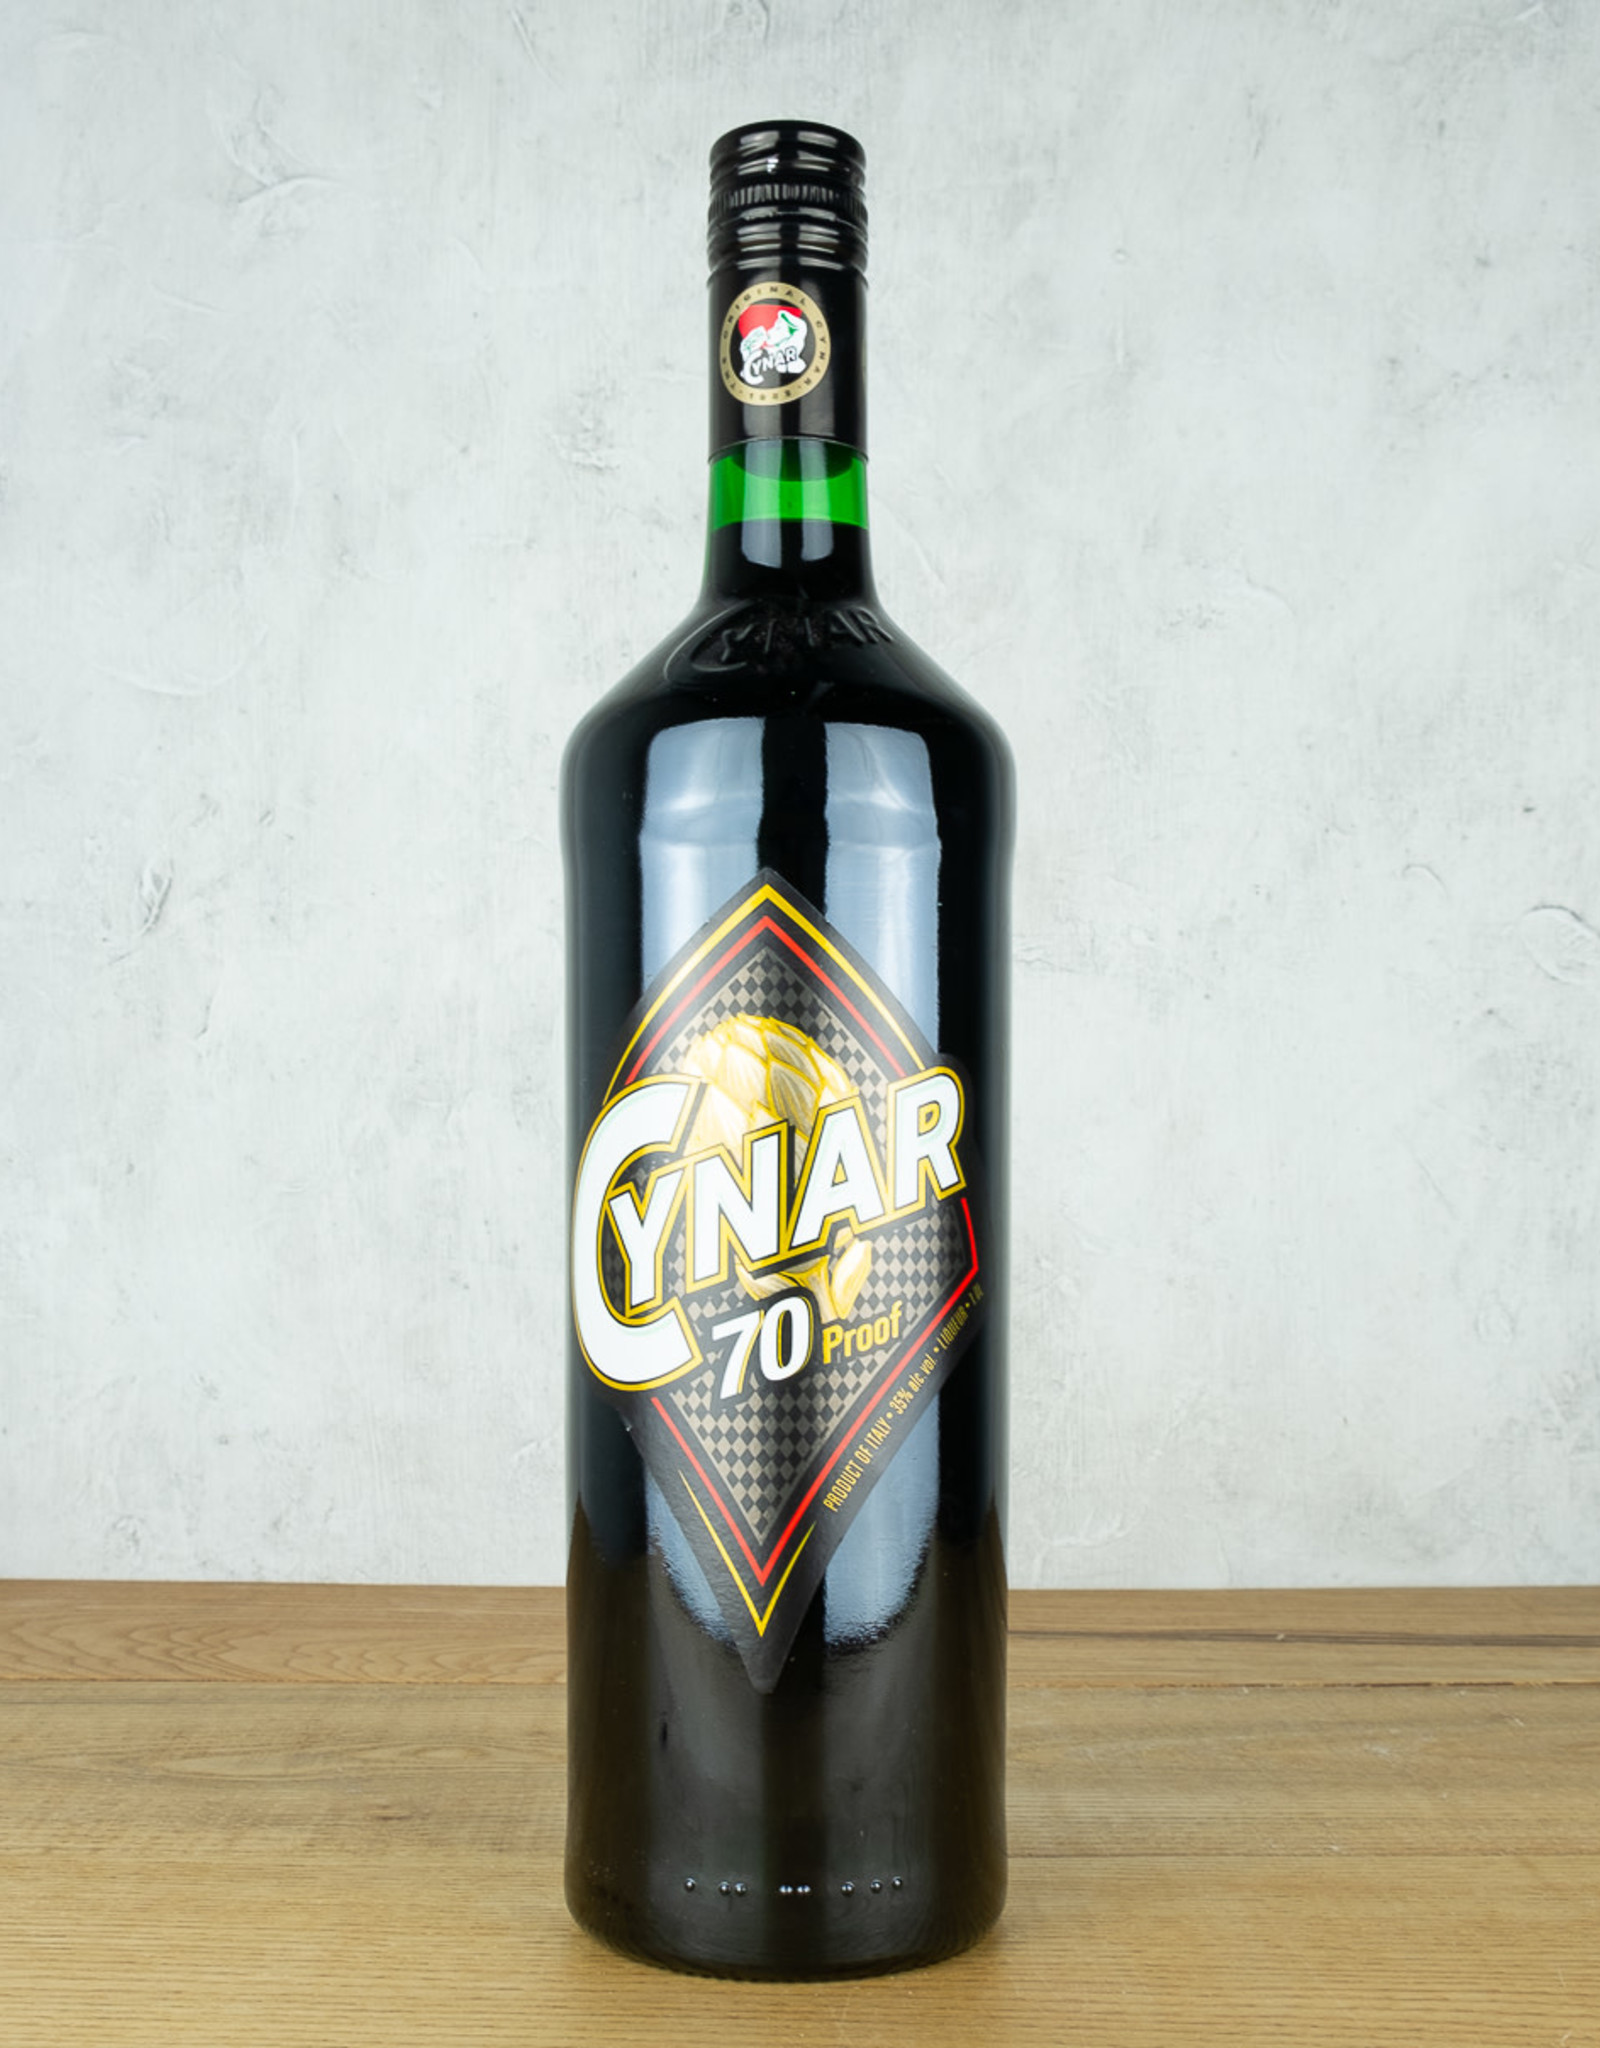 Cynar 70 Proof